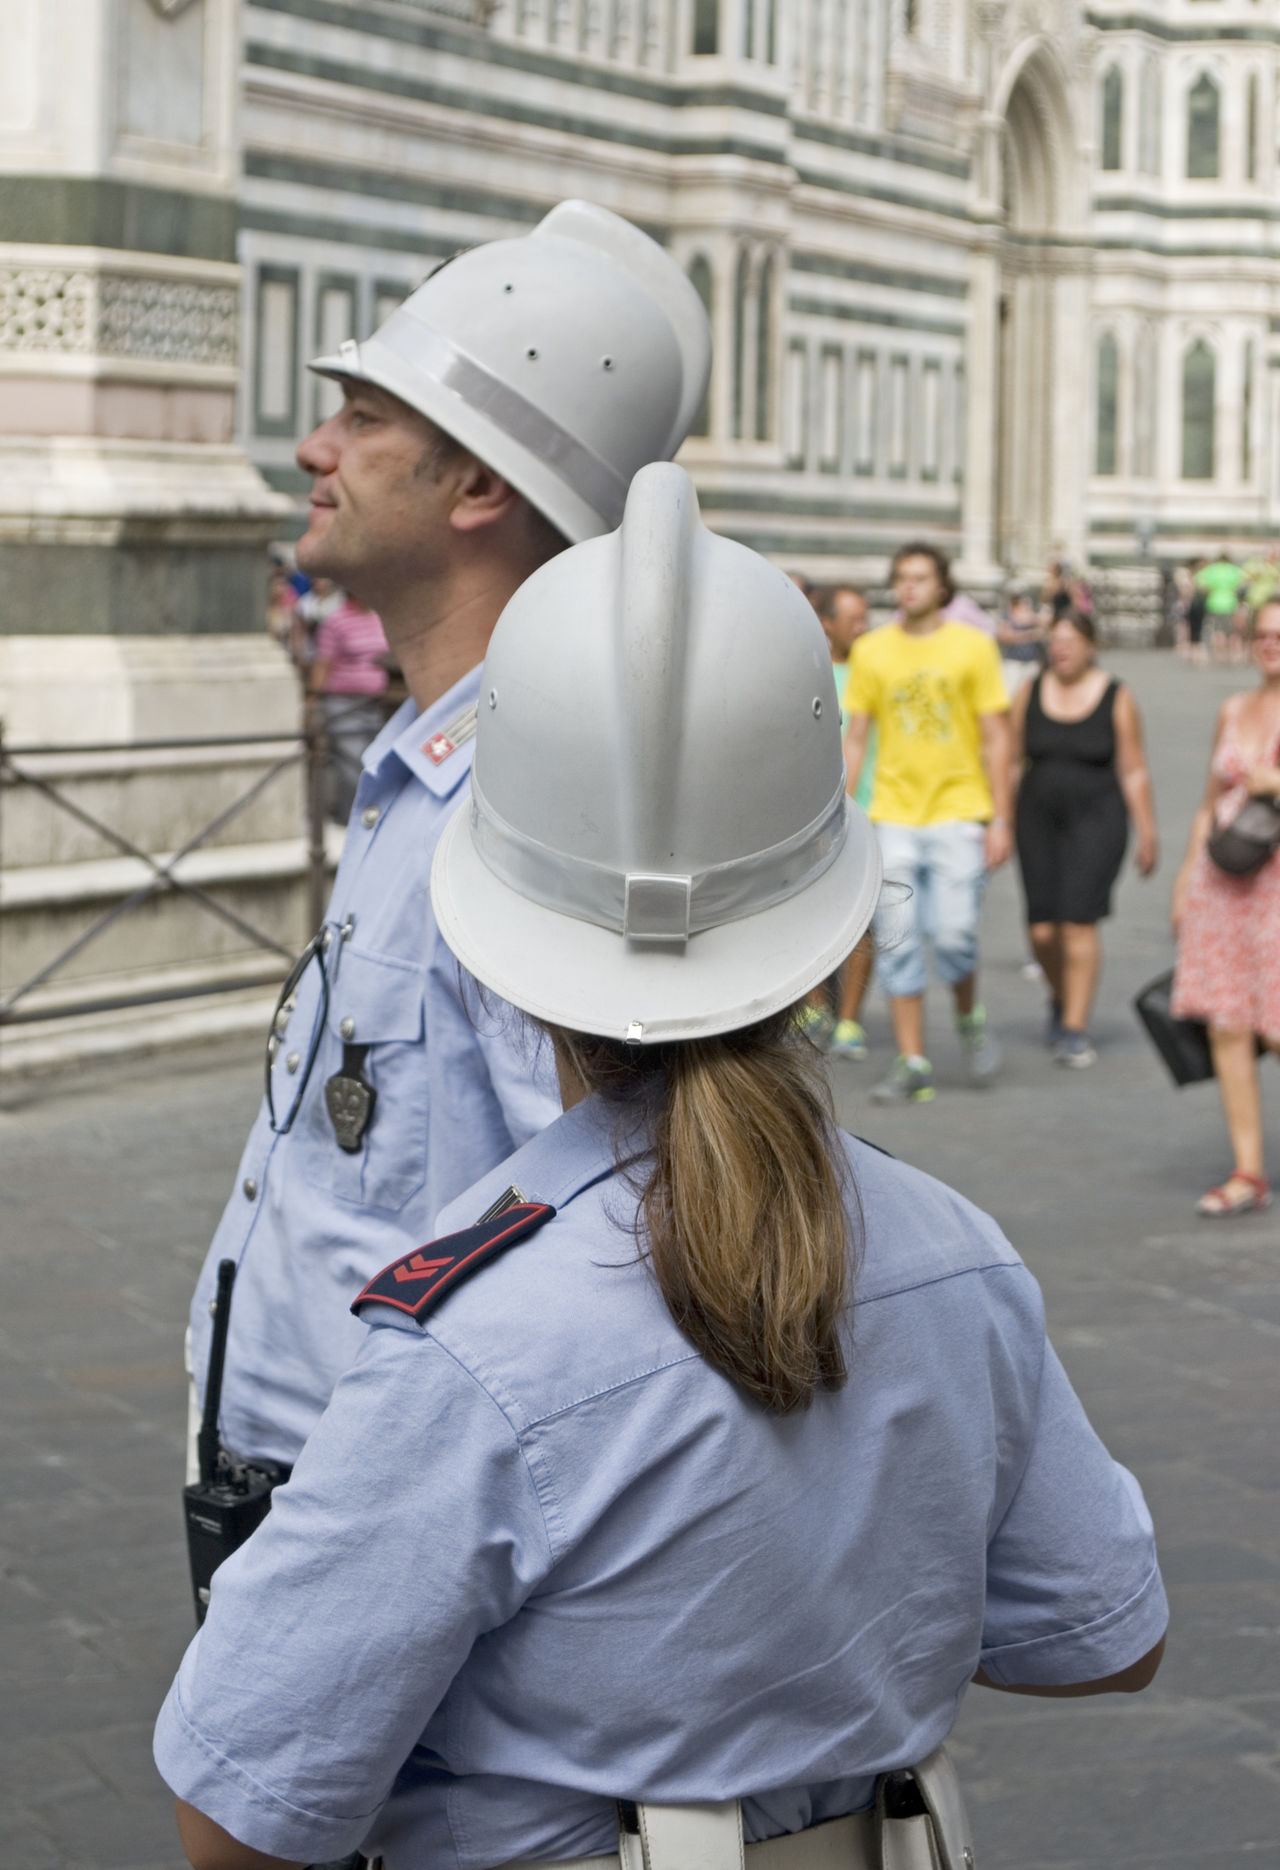 Traffic Police in Piazza Santa Croce, Florence, Italy City Couple Day Europe Florence Headwear Helmet Italian Italy Man Outdoors People Police Police Officers Policeman Real People Street Tourism Traffic Police  Travel Destinations Uniform Urban Woman